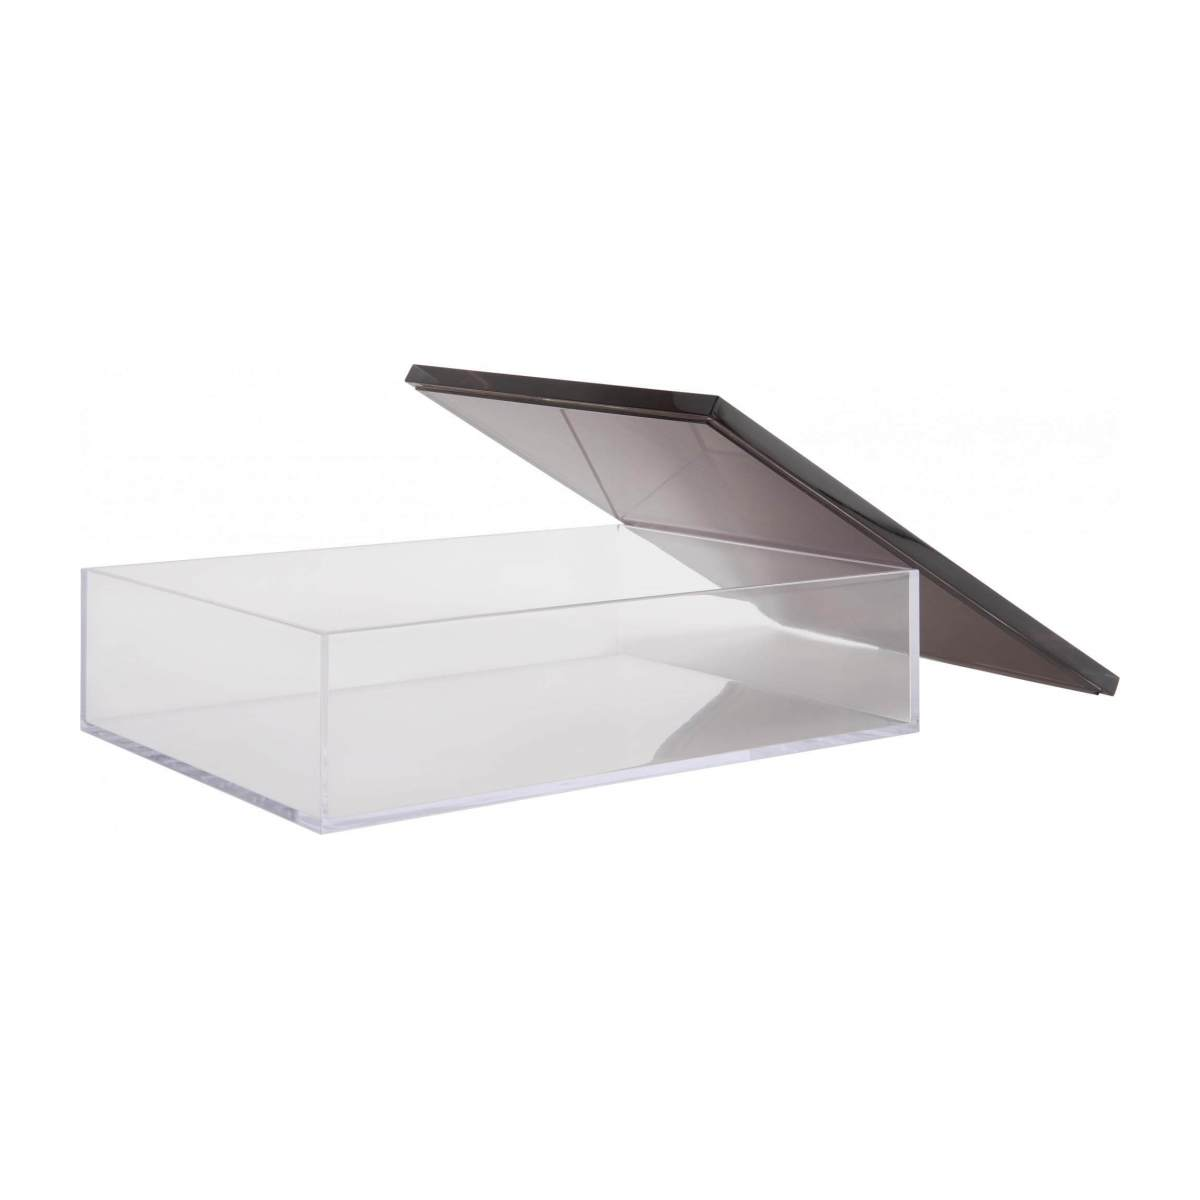 Box made of acrylic, transparent and silver n°3